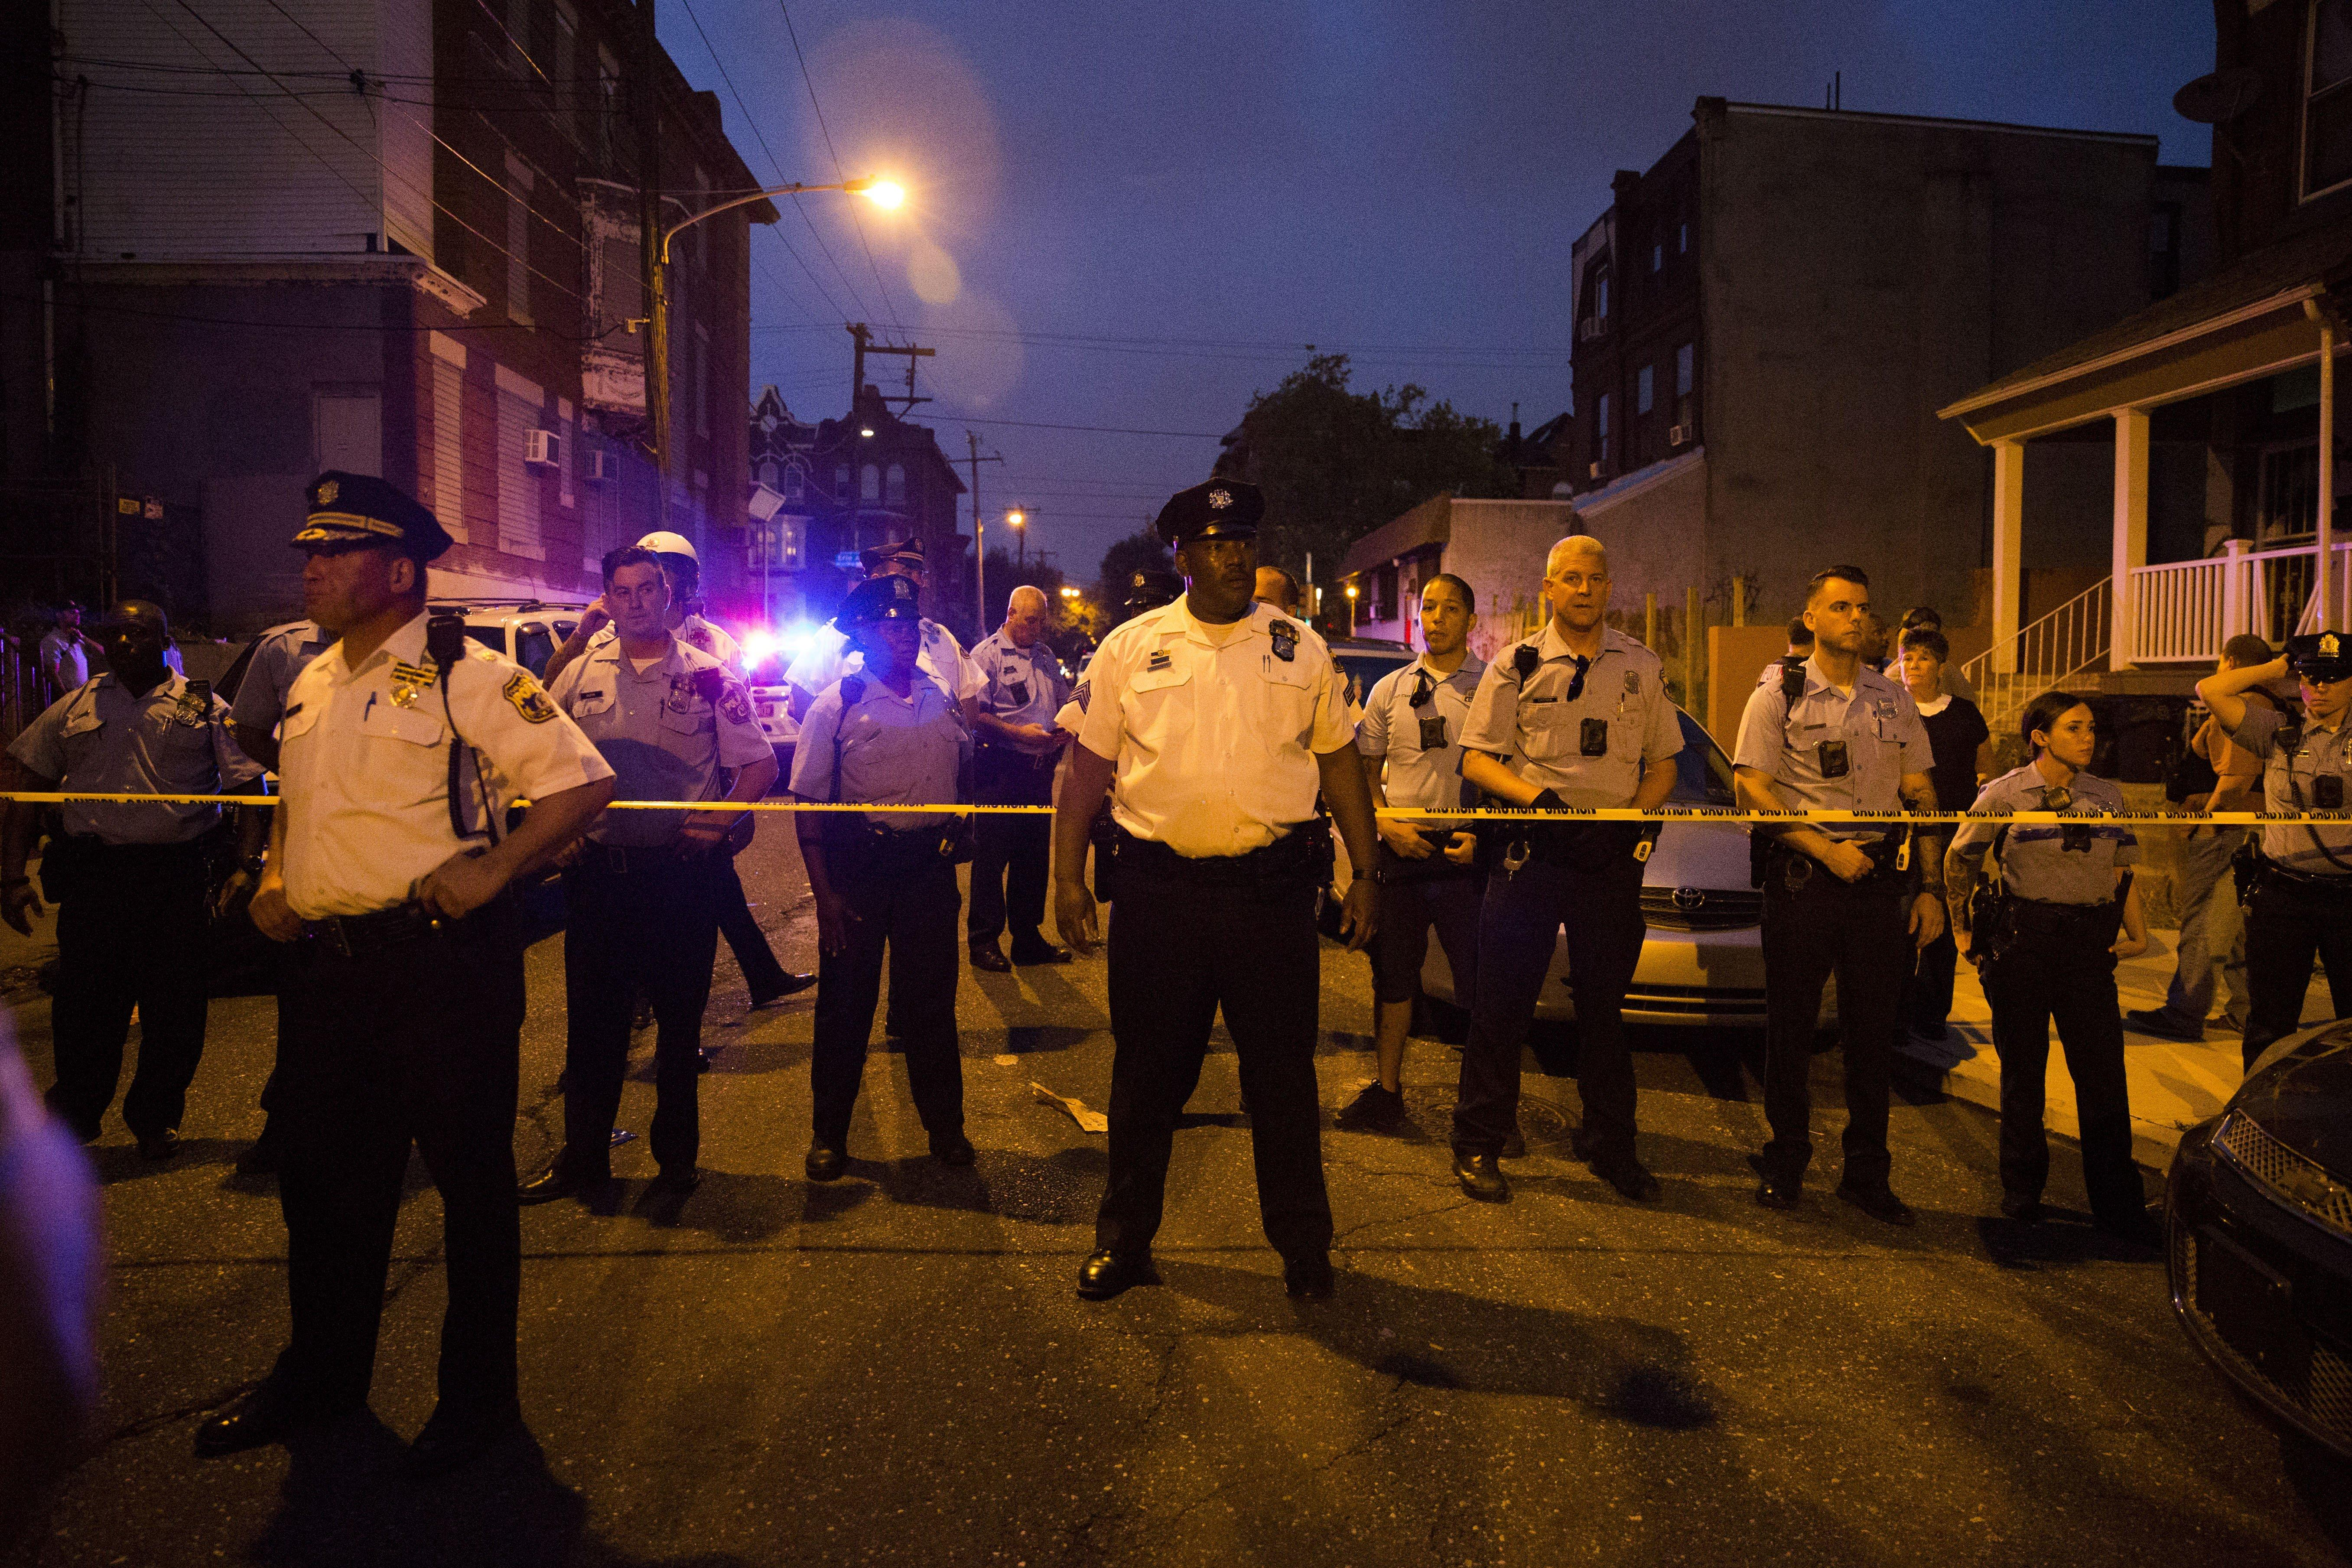 A Philadelphia Lawyer Was Watching the Police Standoff on TV. Then the Gunman Called Him: 'I Need Your Help'